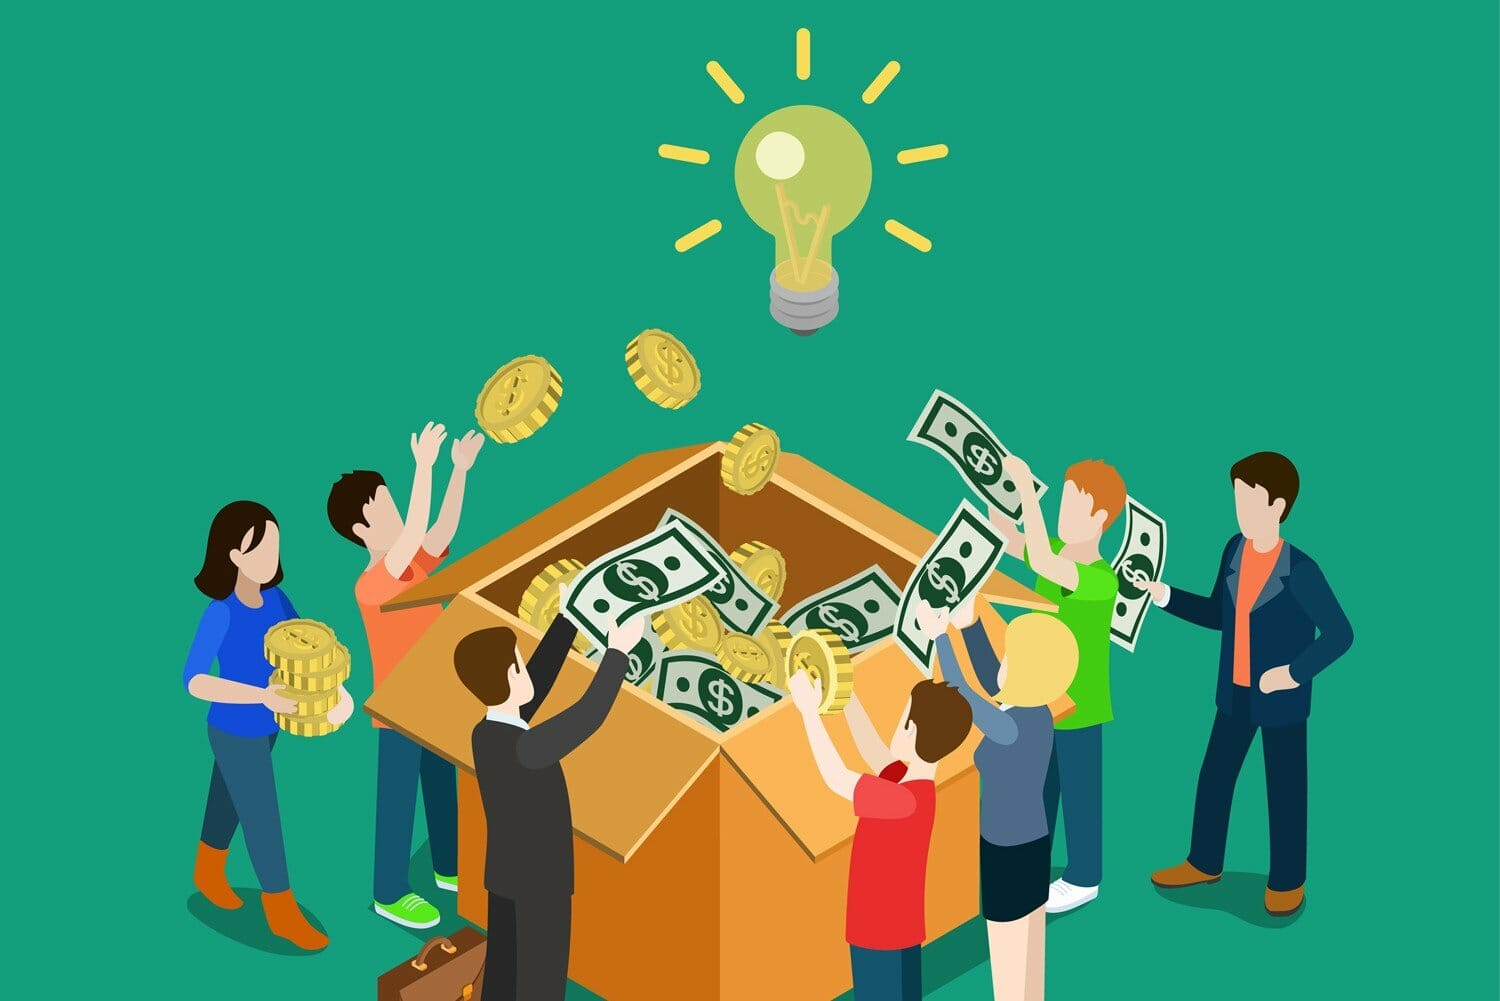 Crowdfunding is becoming a popular way of raising funds; it works by using social platforms as a method of raising capital through the collective effort of individual investors